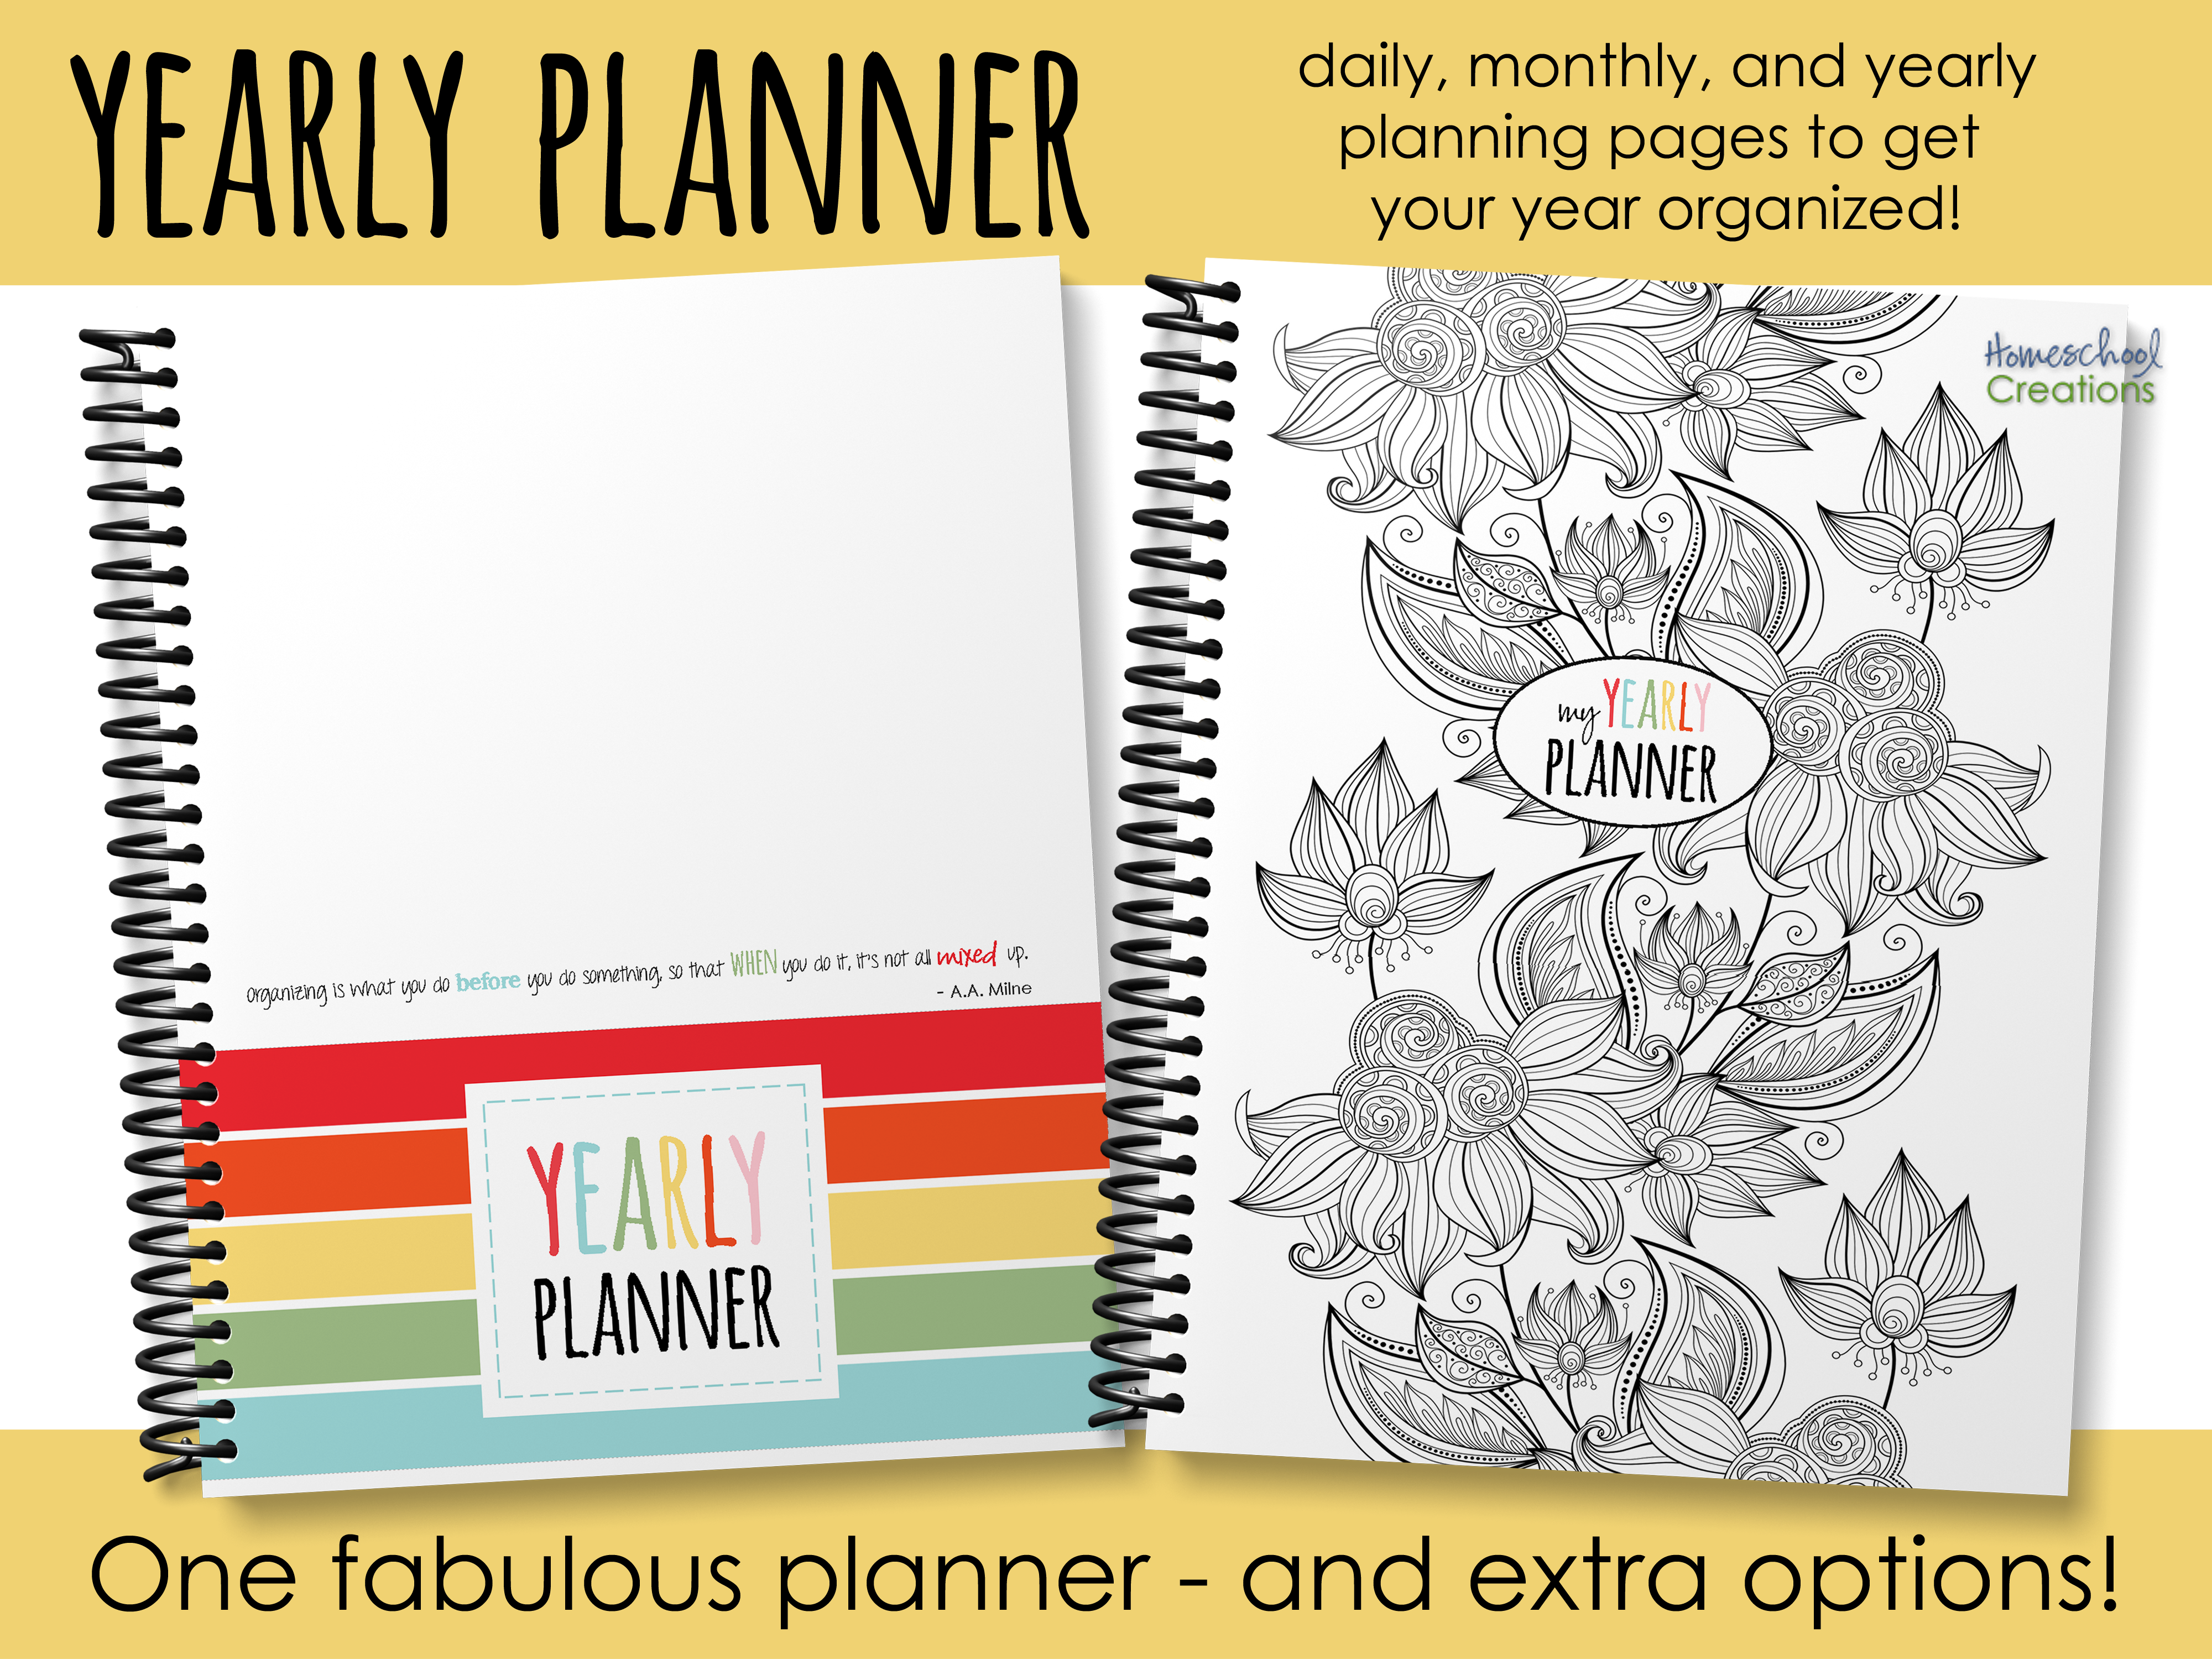 Yearly Planner - Organize your Days